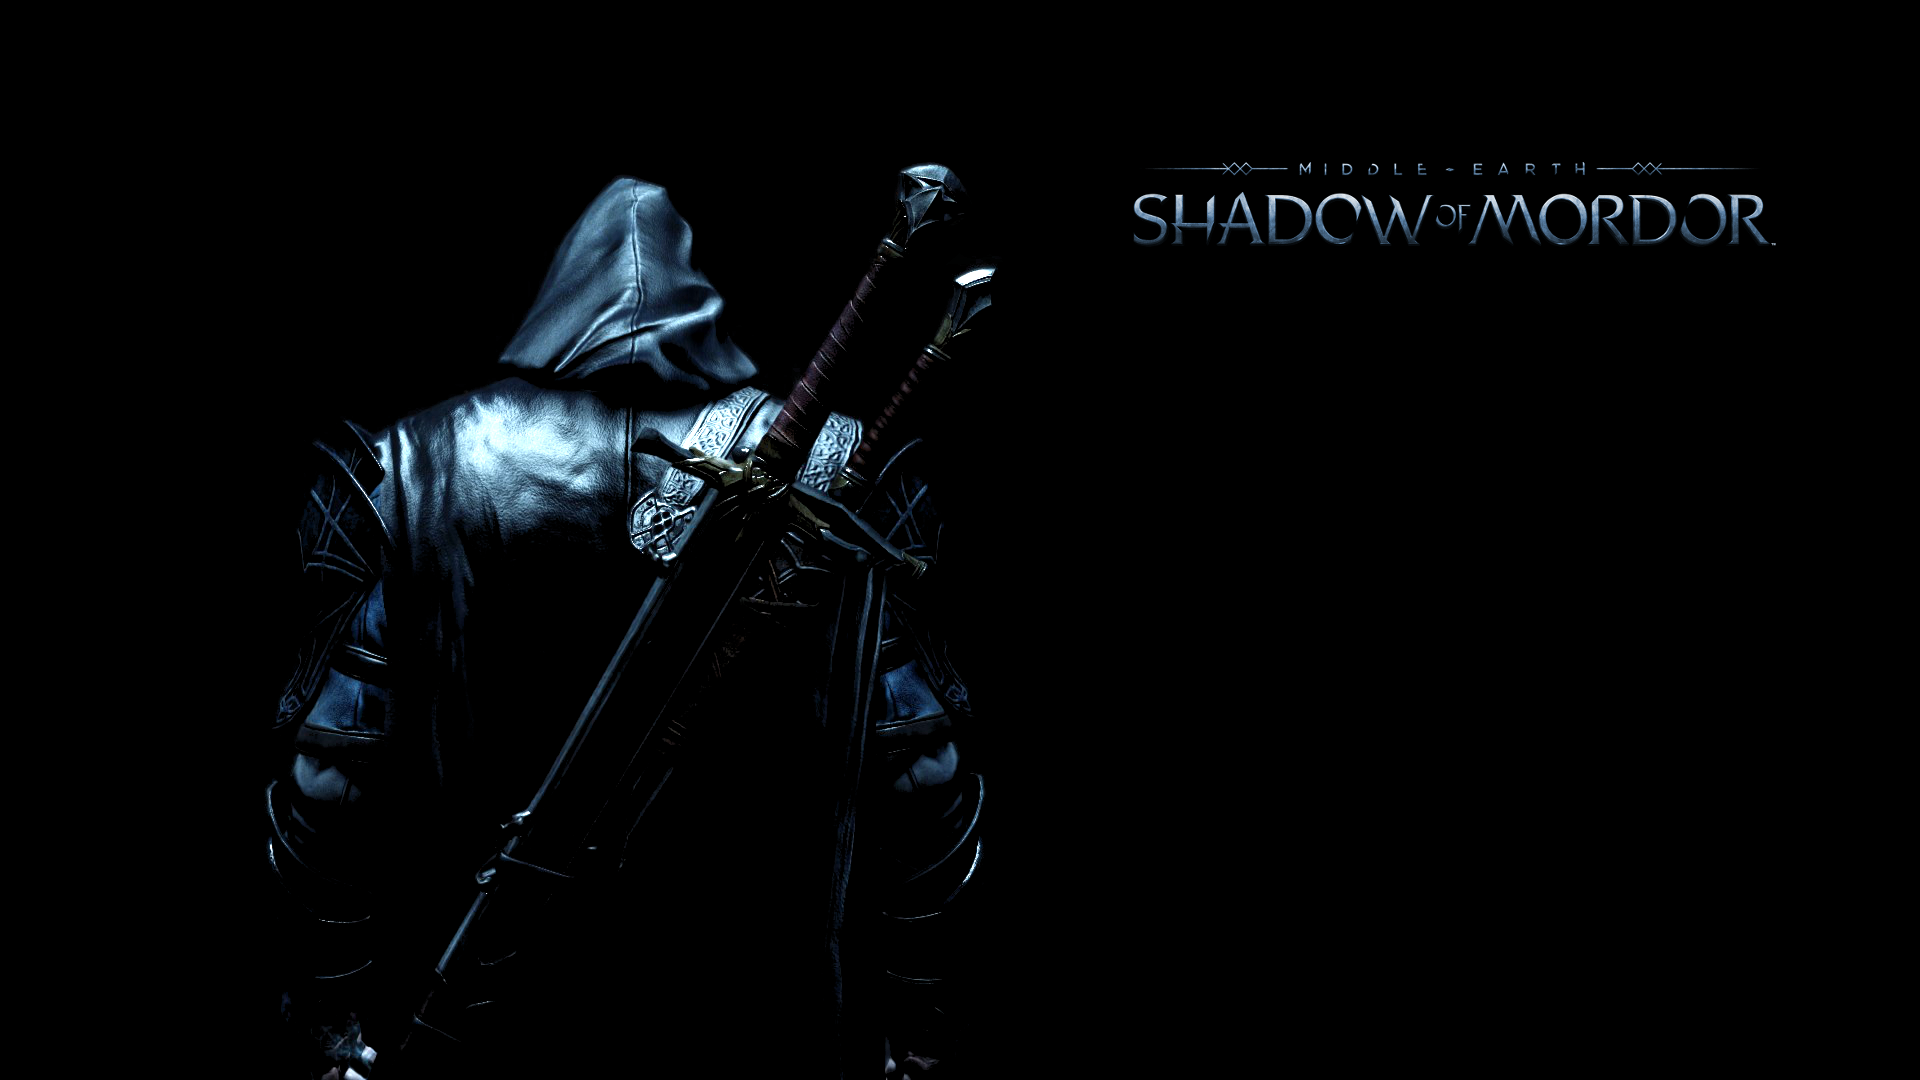 Desktop Backgrounds: Shadow Of Mordor, by Angel Nees, 1920x1080